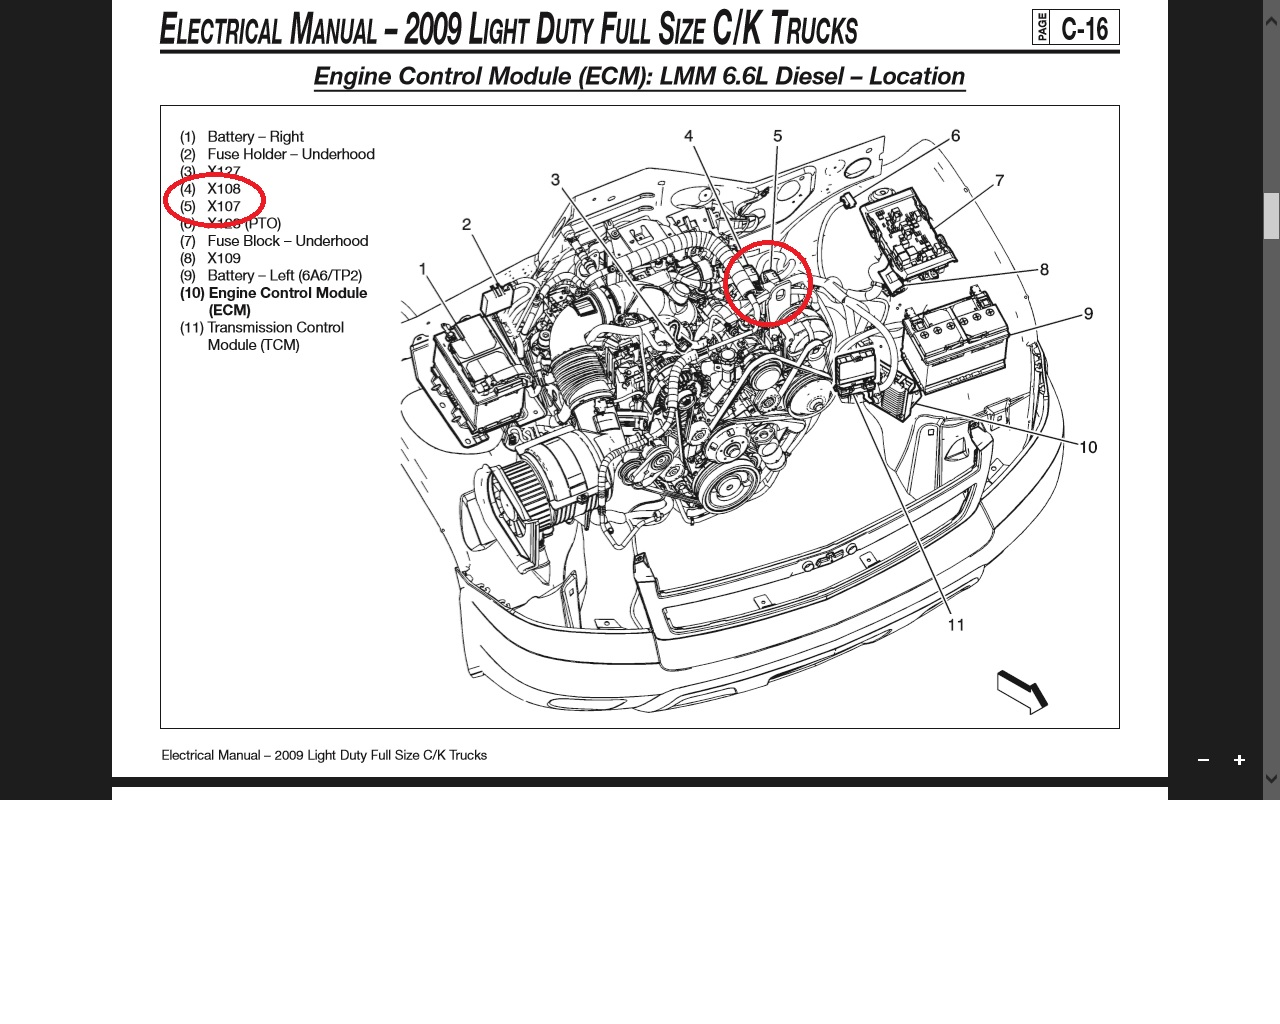 hight resolution of lmm duramax wiring harness plug placements wiring diagram list lmm duramax wiring harness plug placements